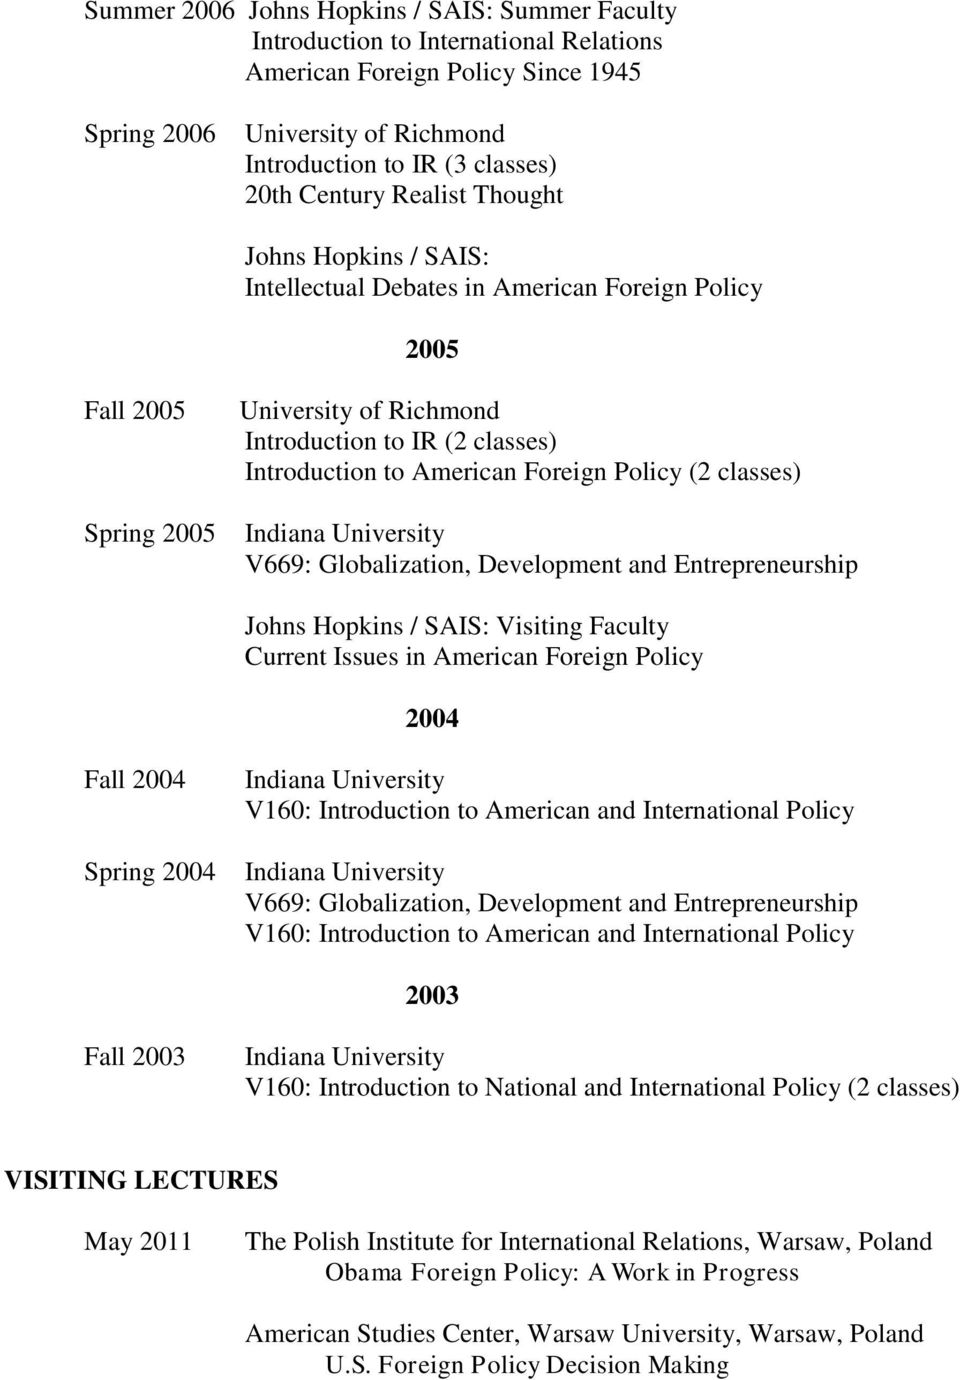 Current Issues in American Foreign Policy 2004 Fall 2004 Spring 2004 V160: Introduction to American and International Policy V669: Globalization, Development and Entrepreneurship V160: Introduction